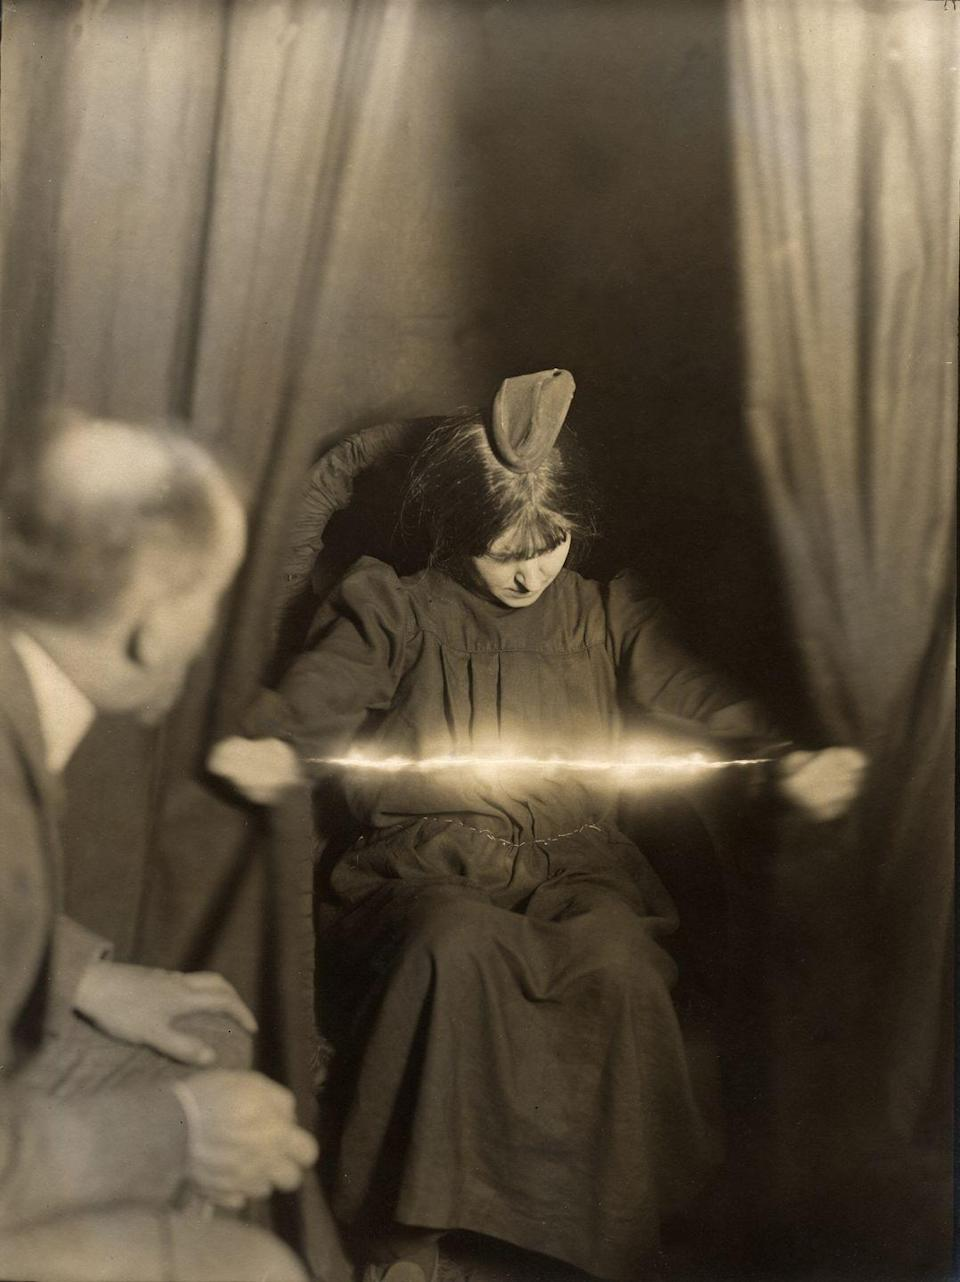 "<p>A spiritual medium, Eva Carriere, holds a glowing rod with both of her hands during a spiritual seance. According to the book <em>A Magician Among the Spirits</em>, at the turn of the 20th century, <a href=""https://www.cambridge.org/core/books/magician-among-the-spirits/287B6F1D1986740CAC42E55B1D60792C"" rel=""nofollow noopener"" target=""_blank"" data-ylk=""slk:Carriere was a popular medium who was even observed by magician Harry Houdini"" class=""link rapid-noclick-resp"">Carriere was a popular medium who was even observed by magician Harry Houdini</a>, in an attempt to pick up a few of her tricks.</p>"